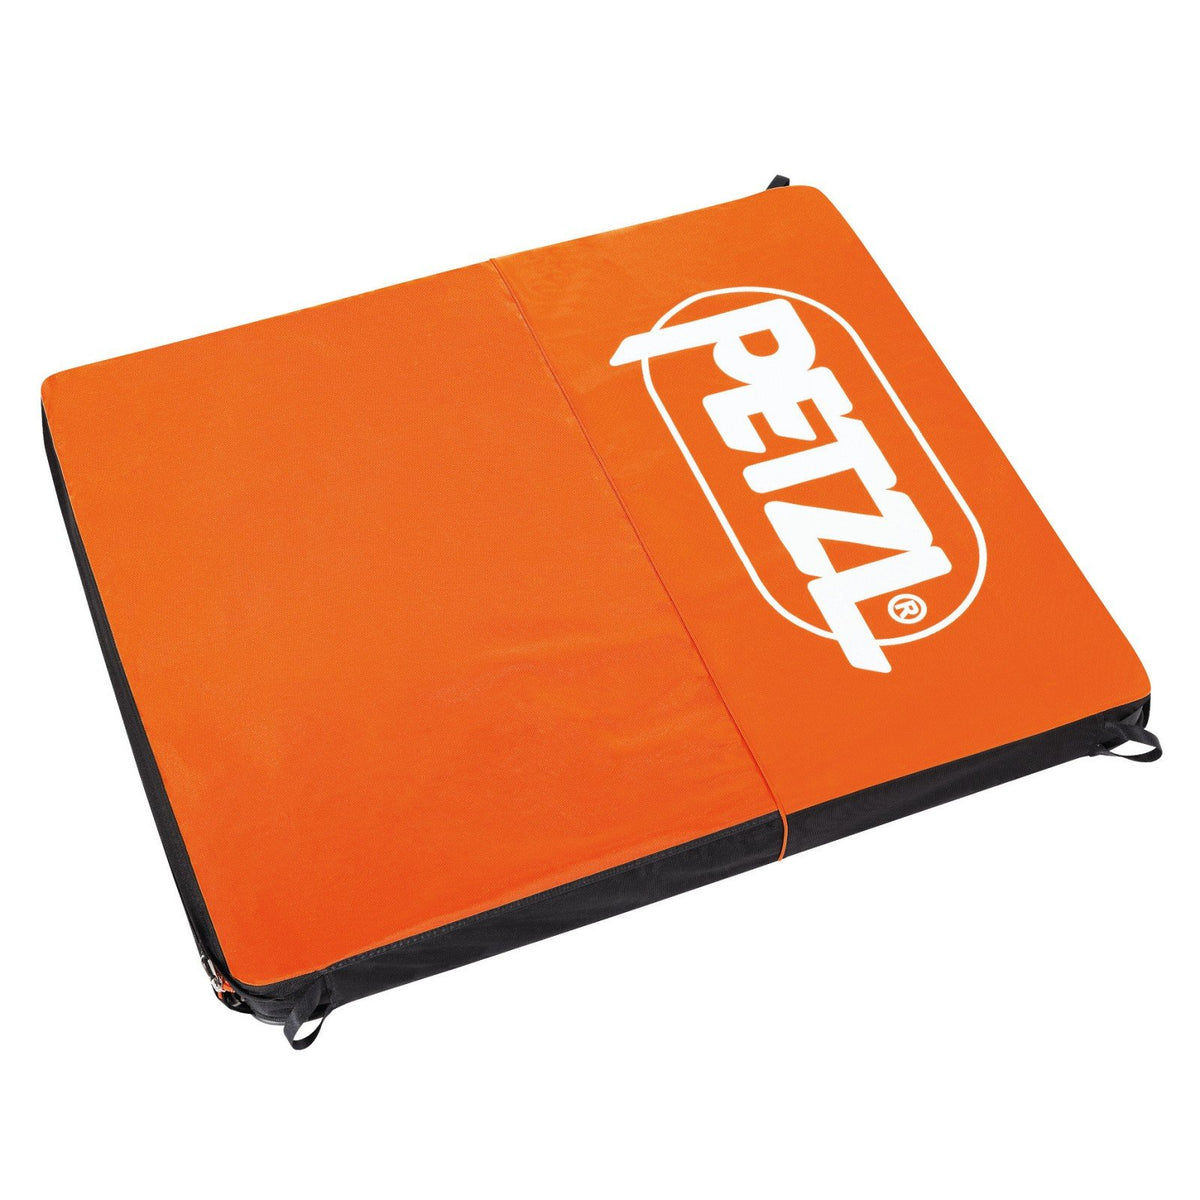 Petzl Alto bouldering crash pad, shown open laid flat, in orange colour with white brand logo